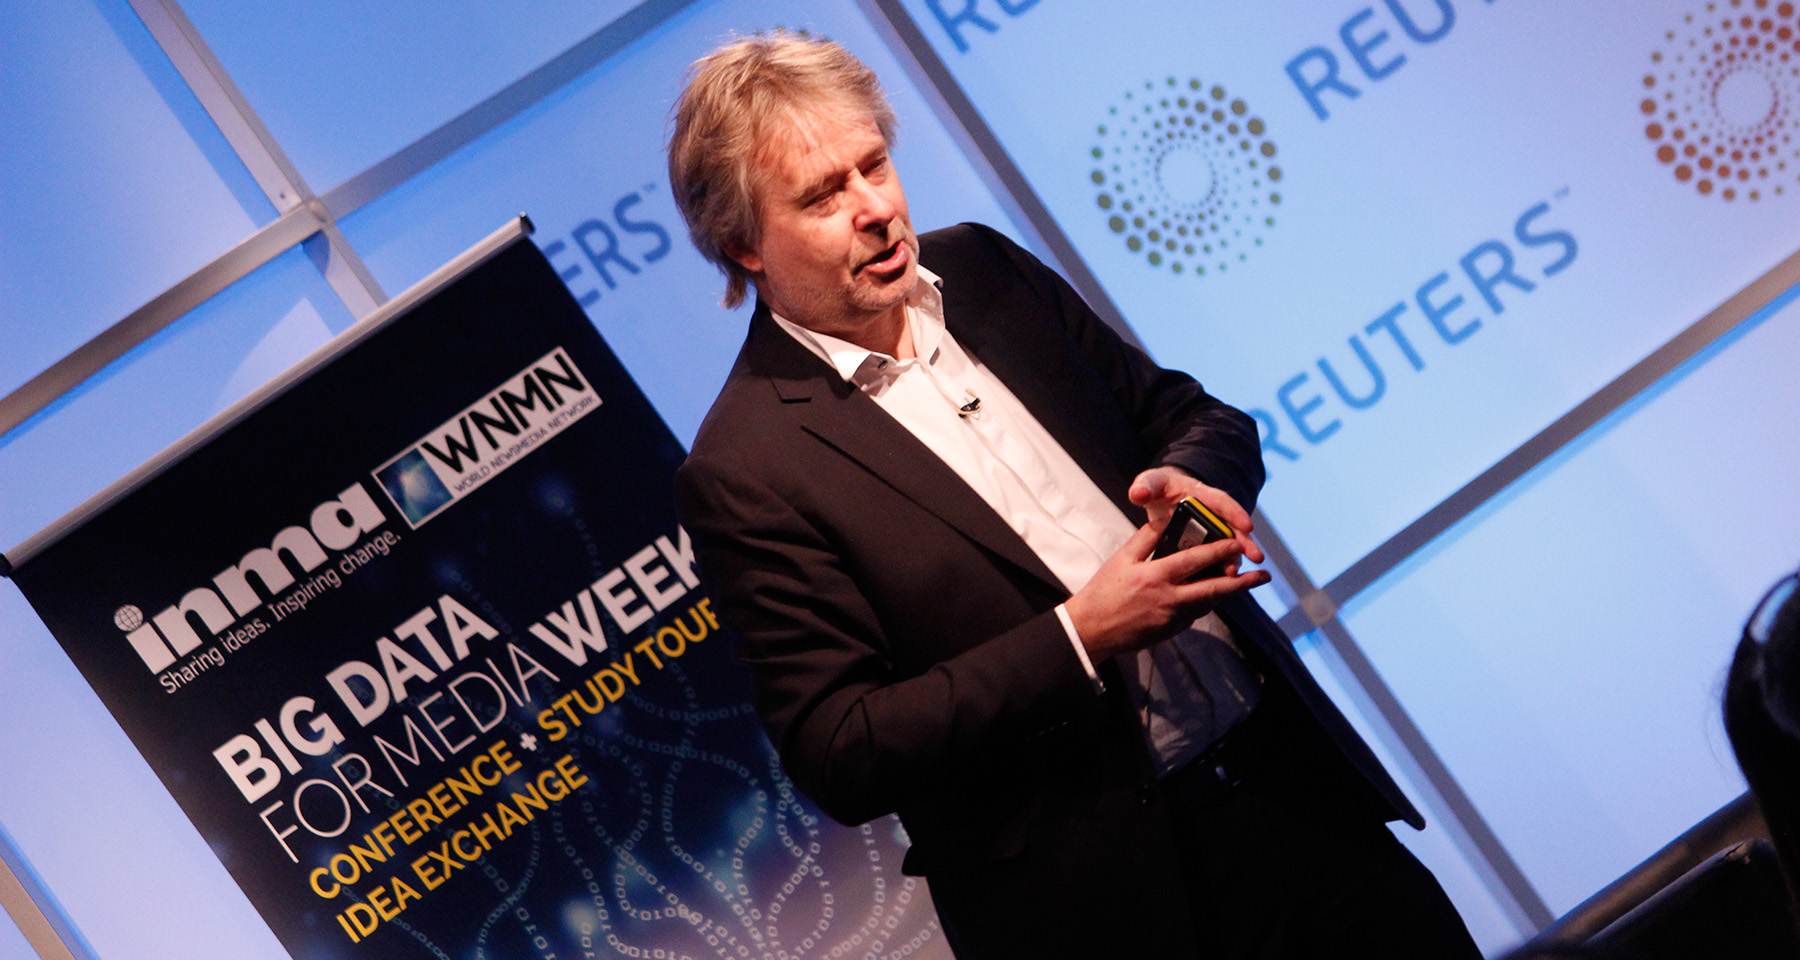 Schibsted shares 3 requirements for Big Data success